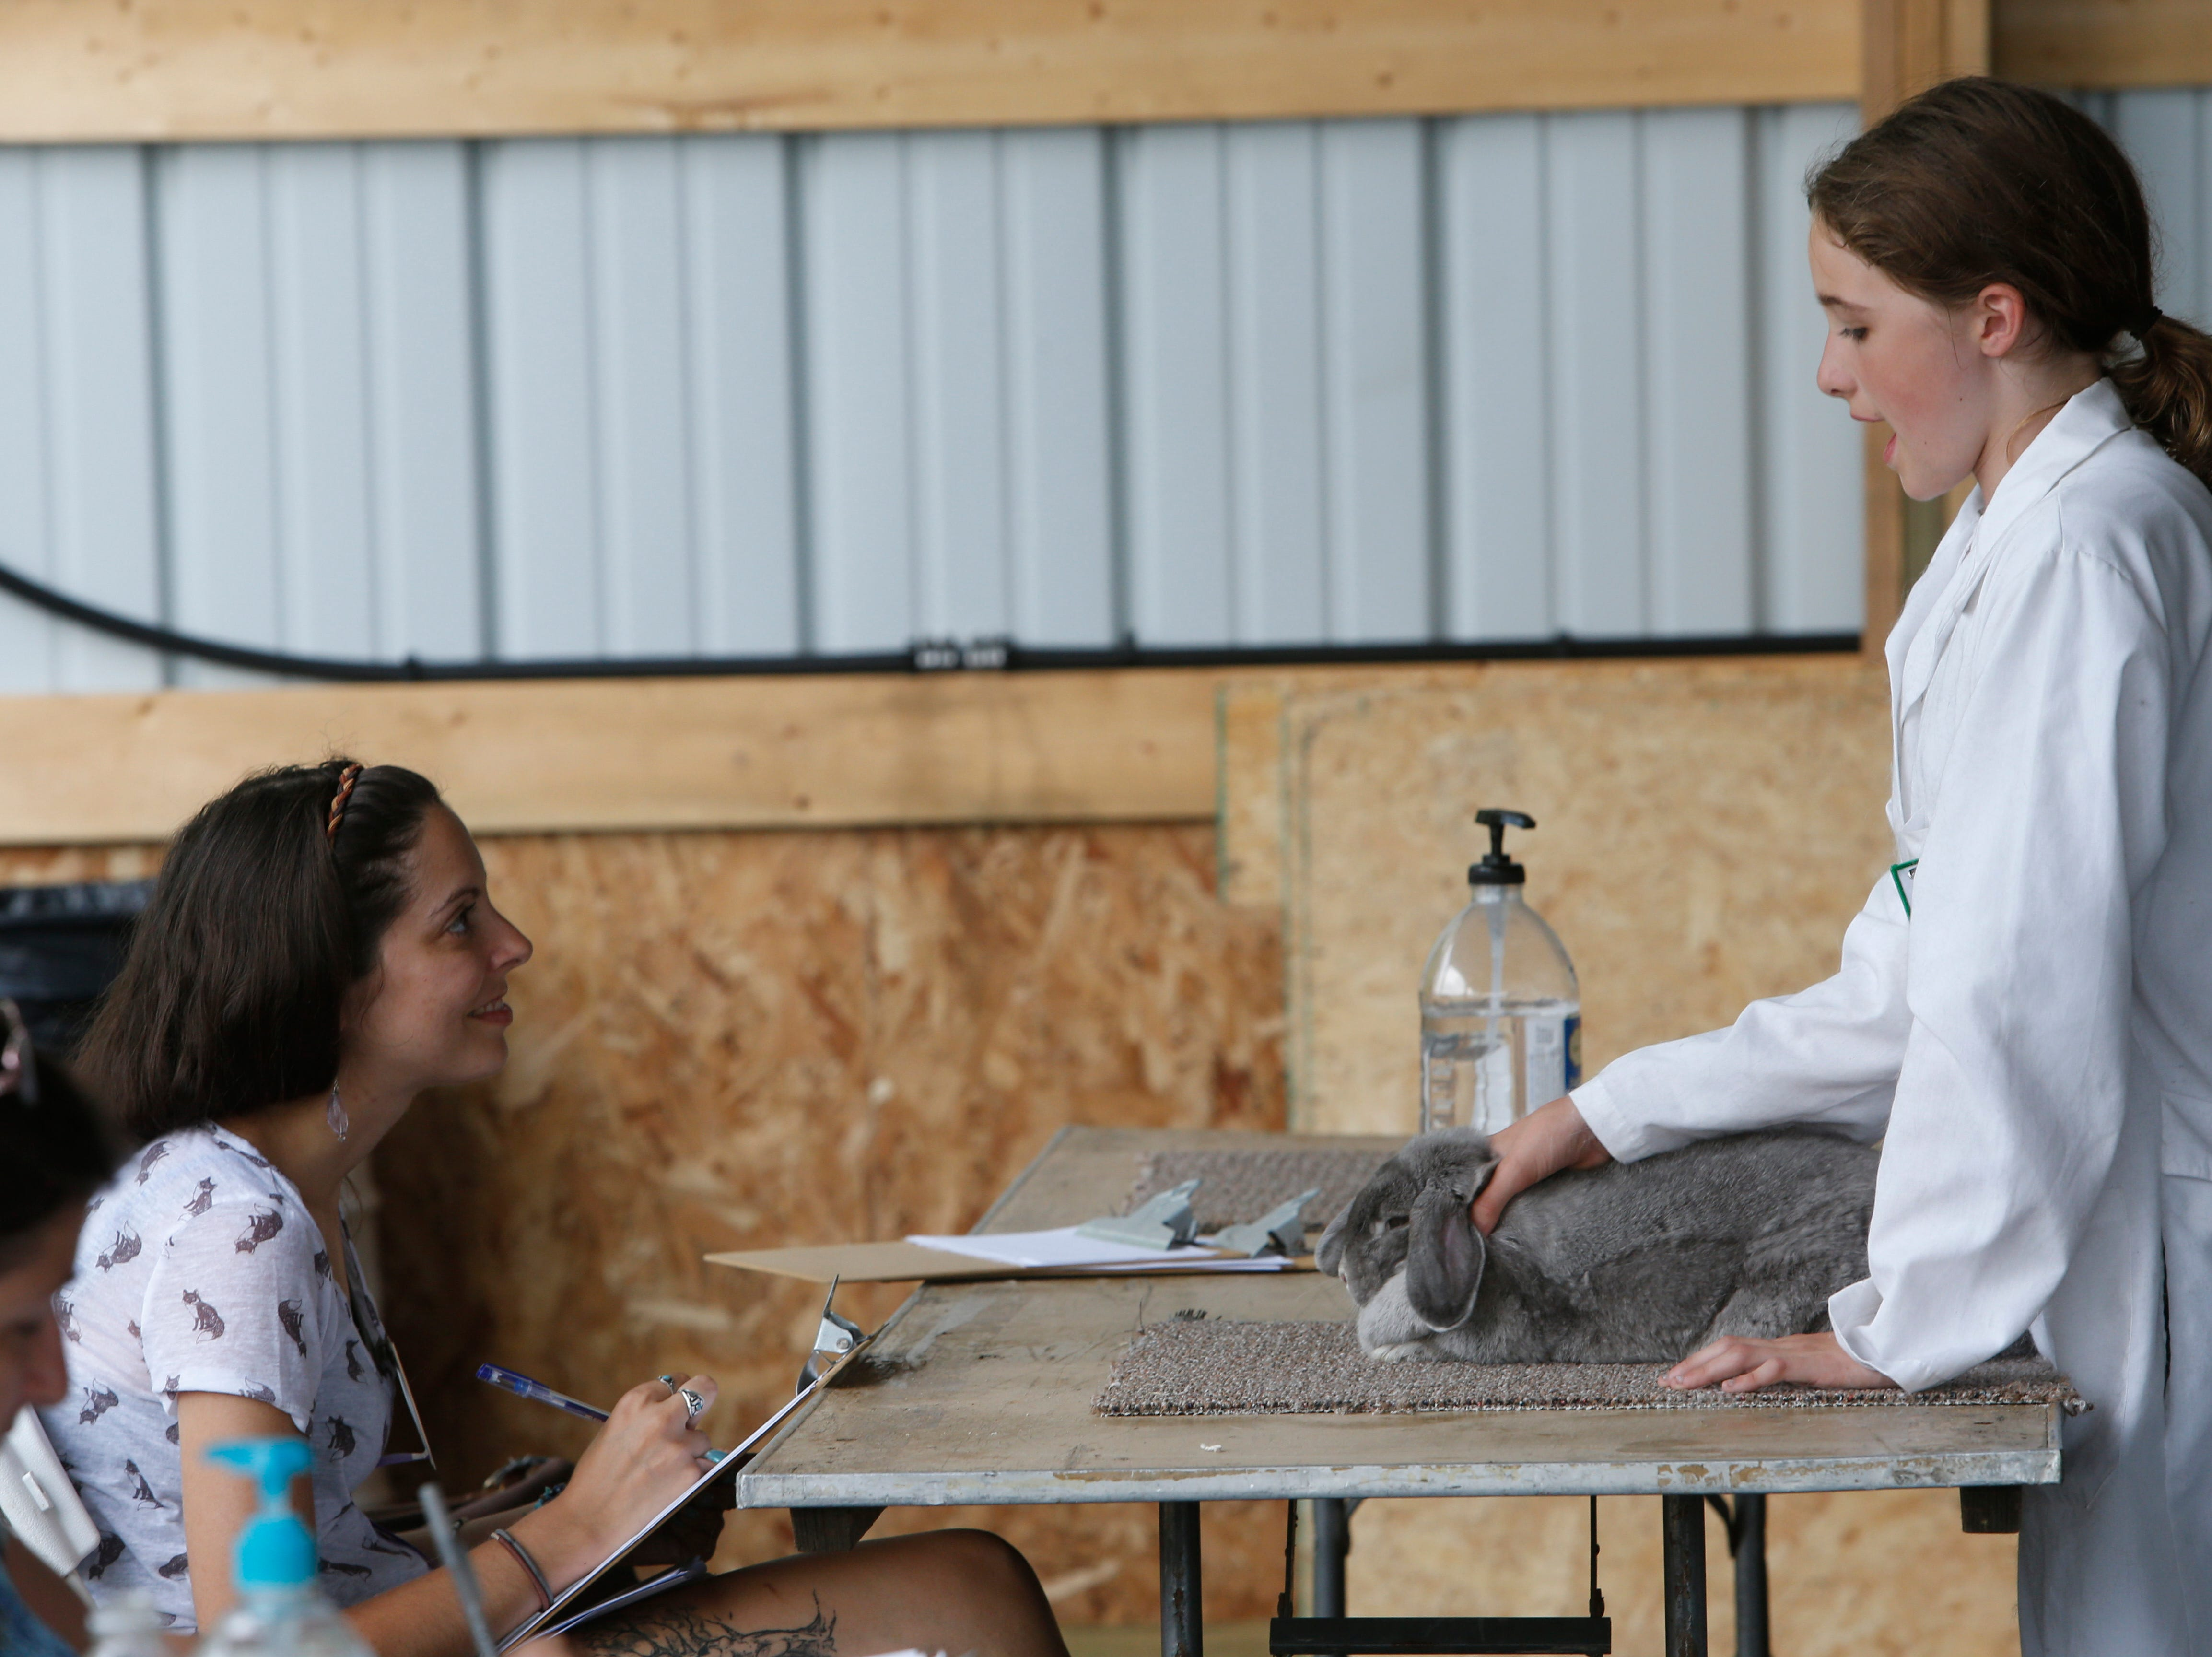 Loralee Reidy judges Teagan Halsley on how well she knows her rabbit during the Ulster County Fair in New Paltz on July 31, 2018.